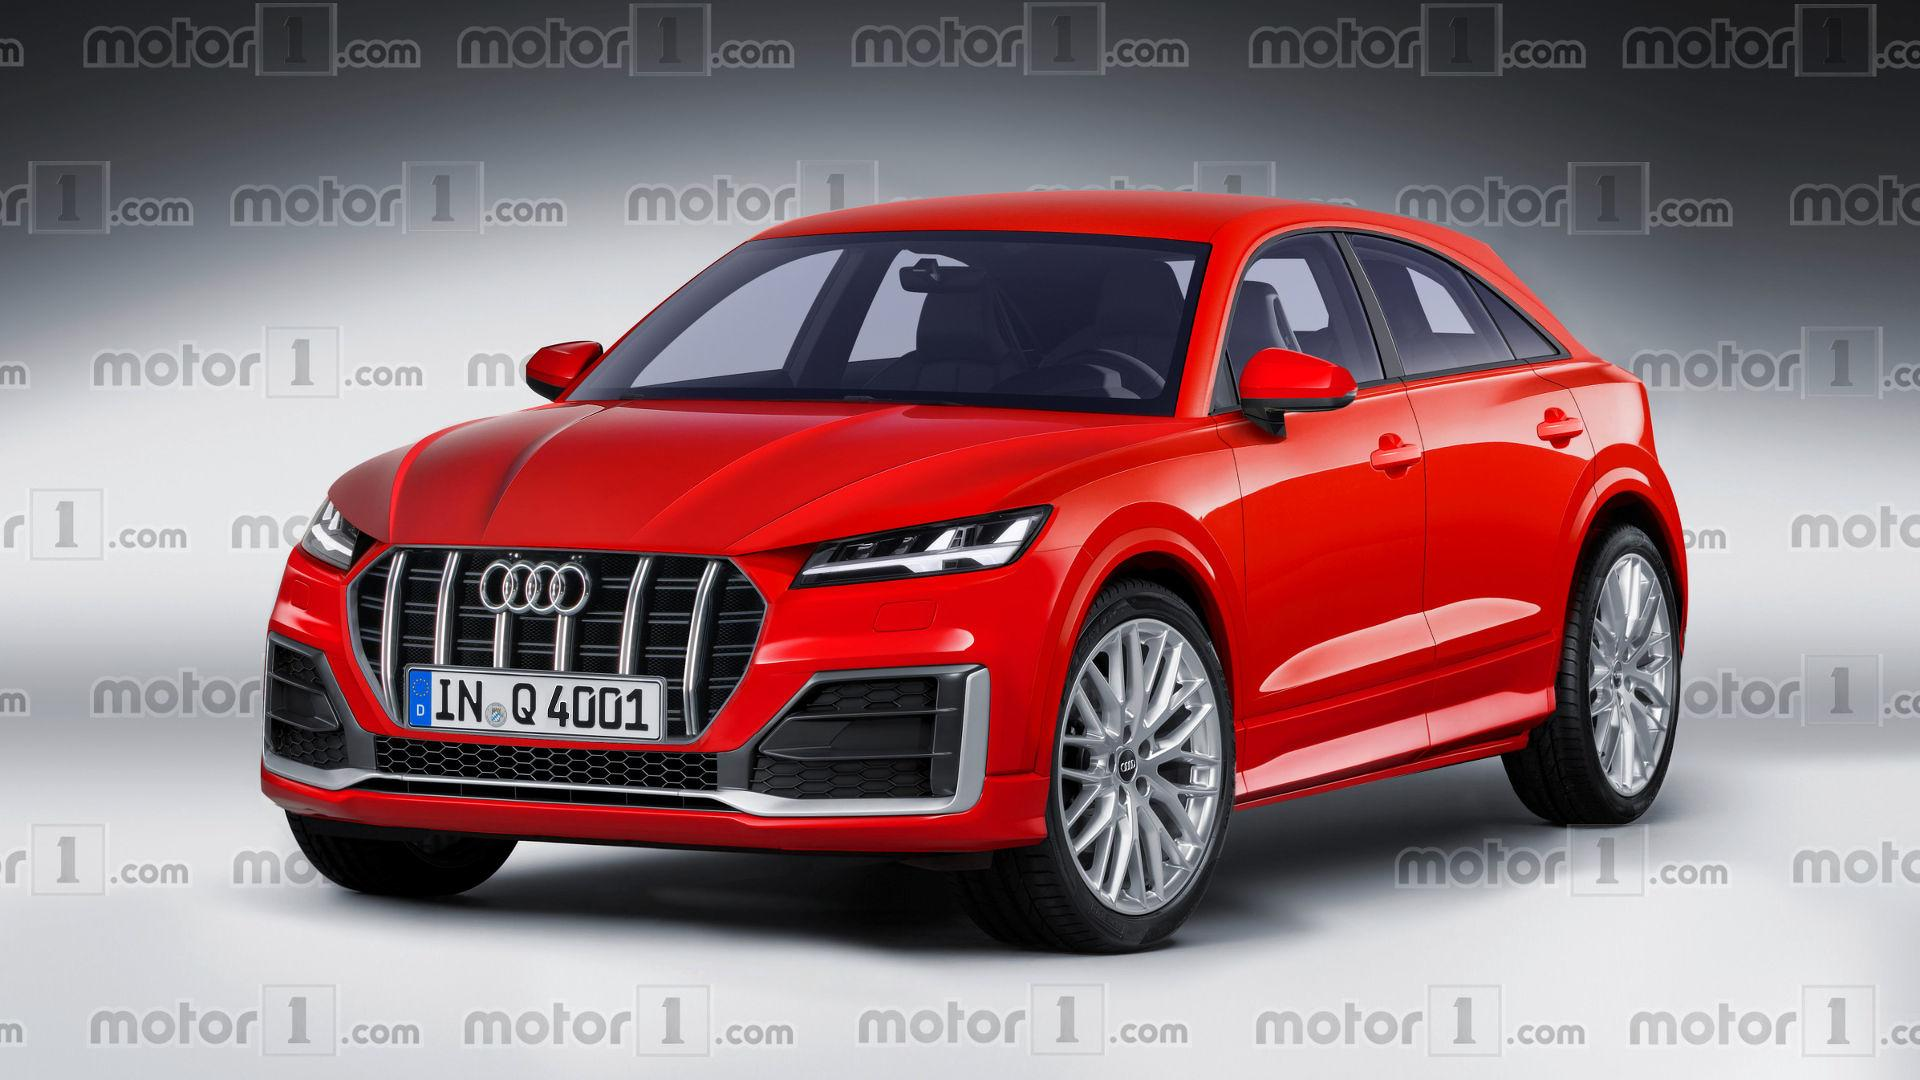 Audi Q Render Previews The BMW X Rival - Audi q4